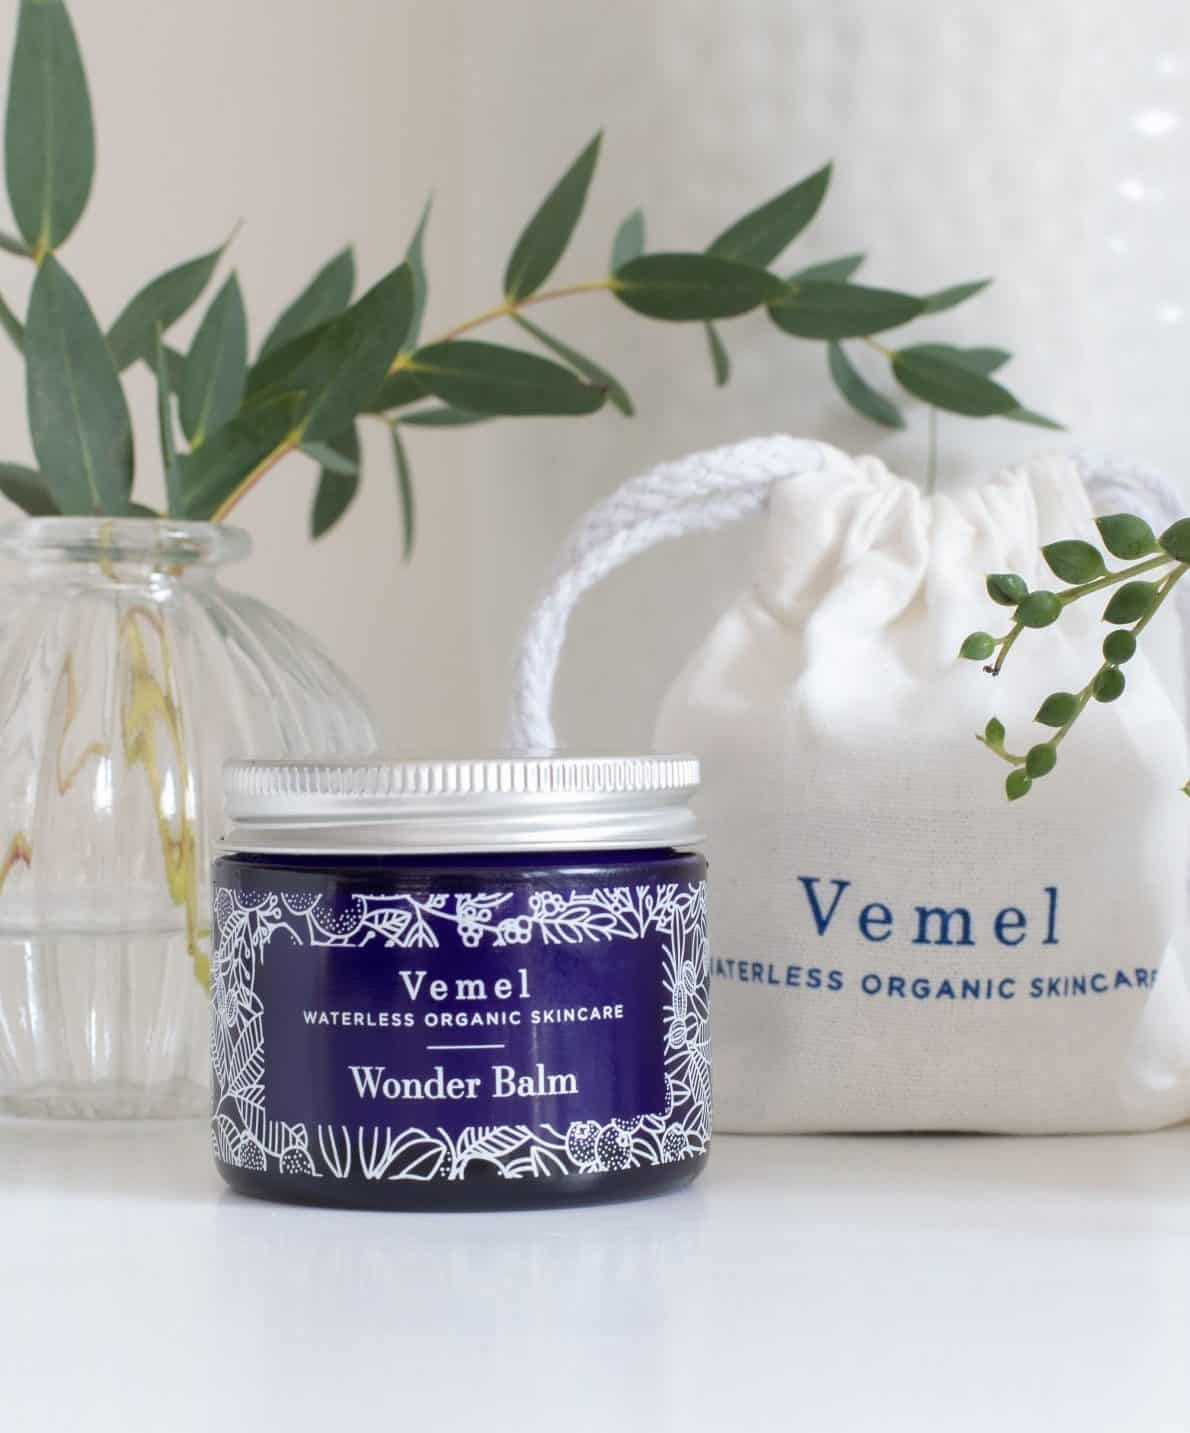 Vemel Organic Skincare Products